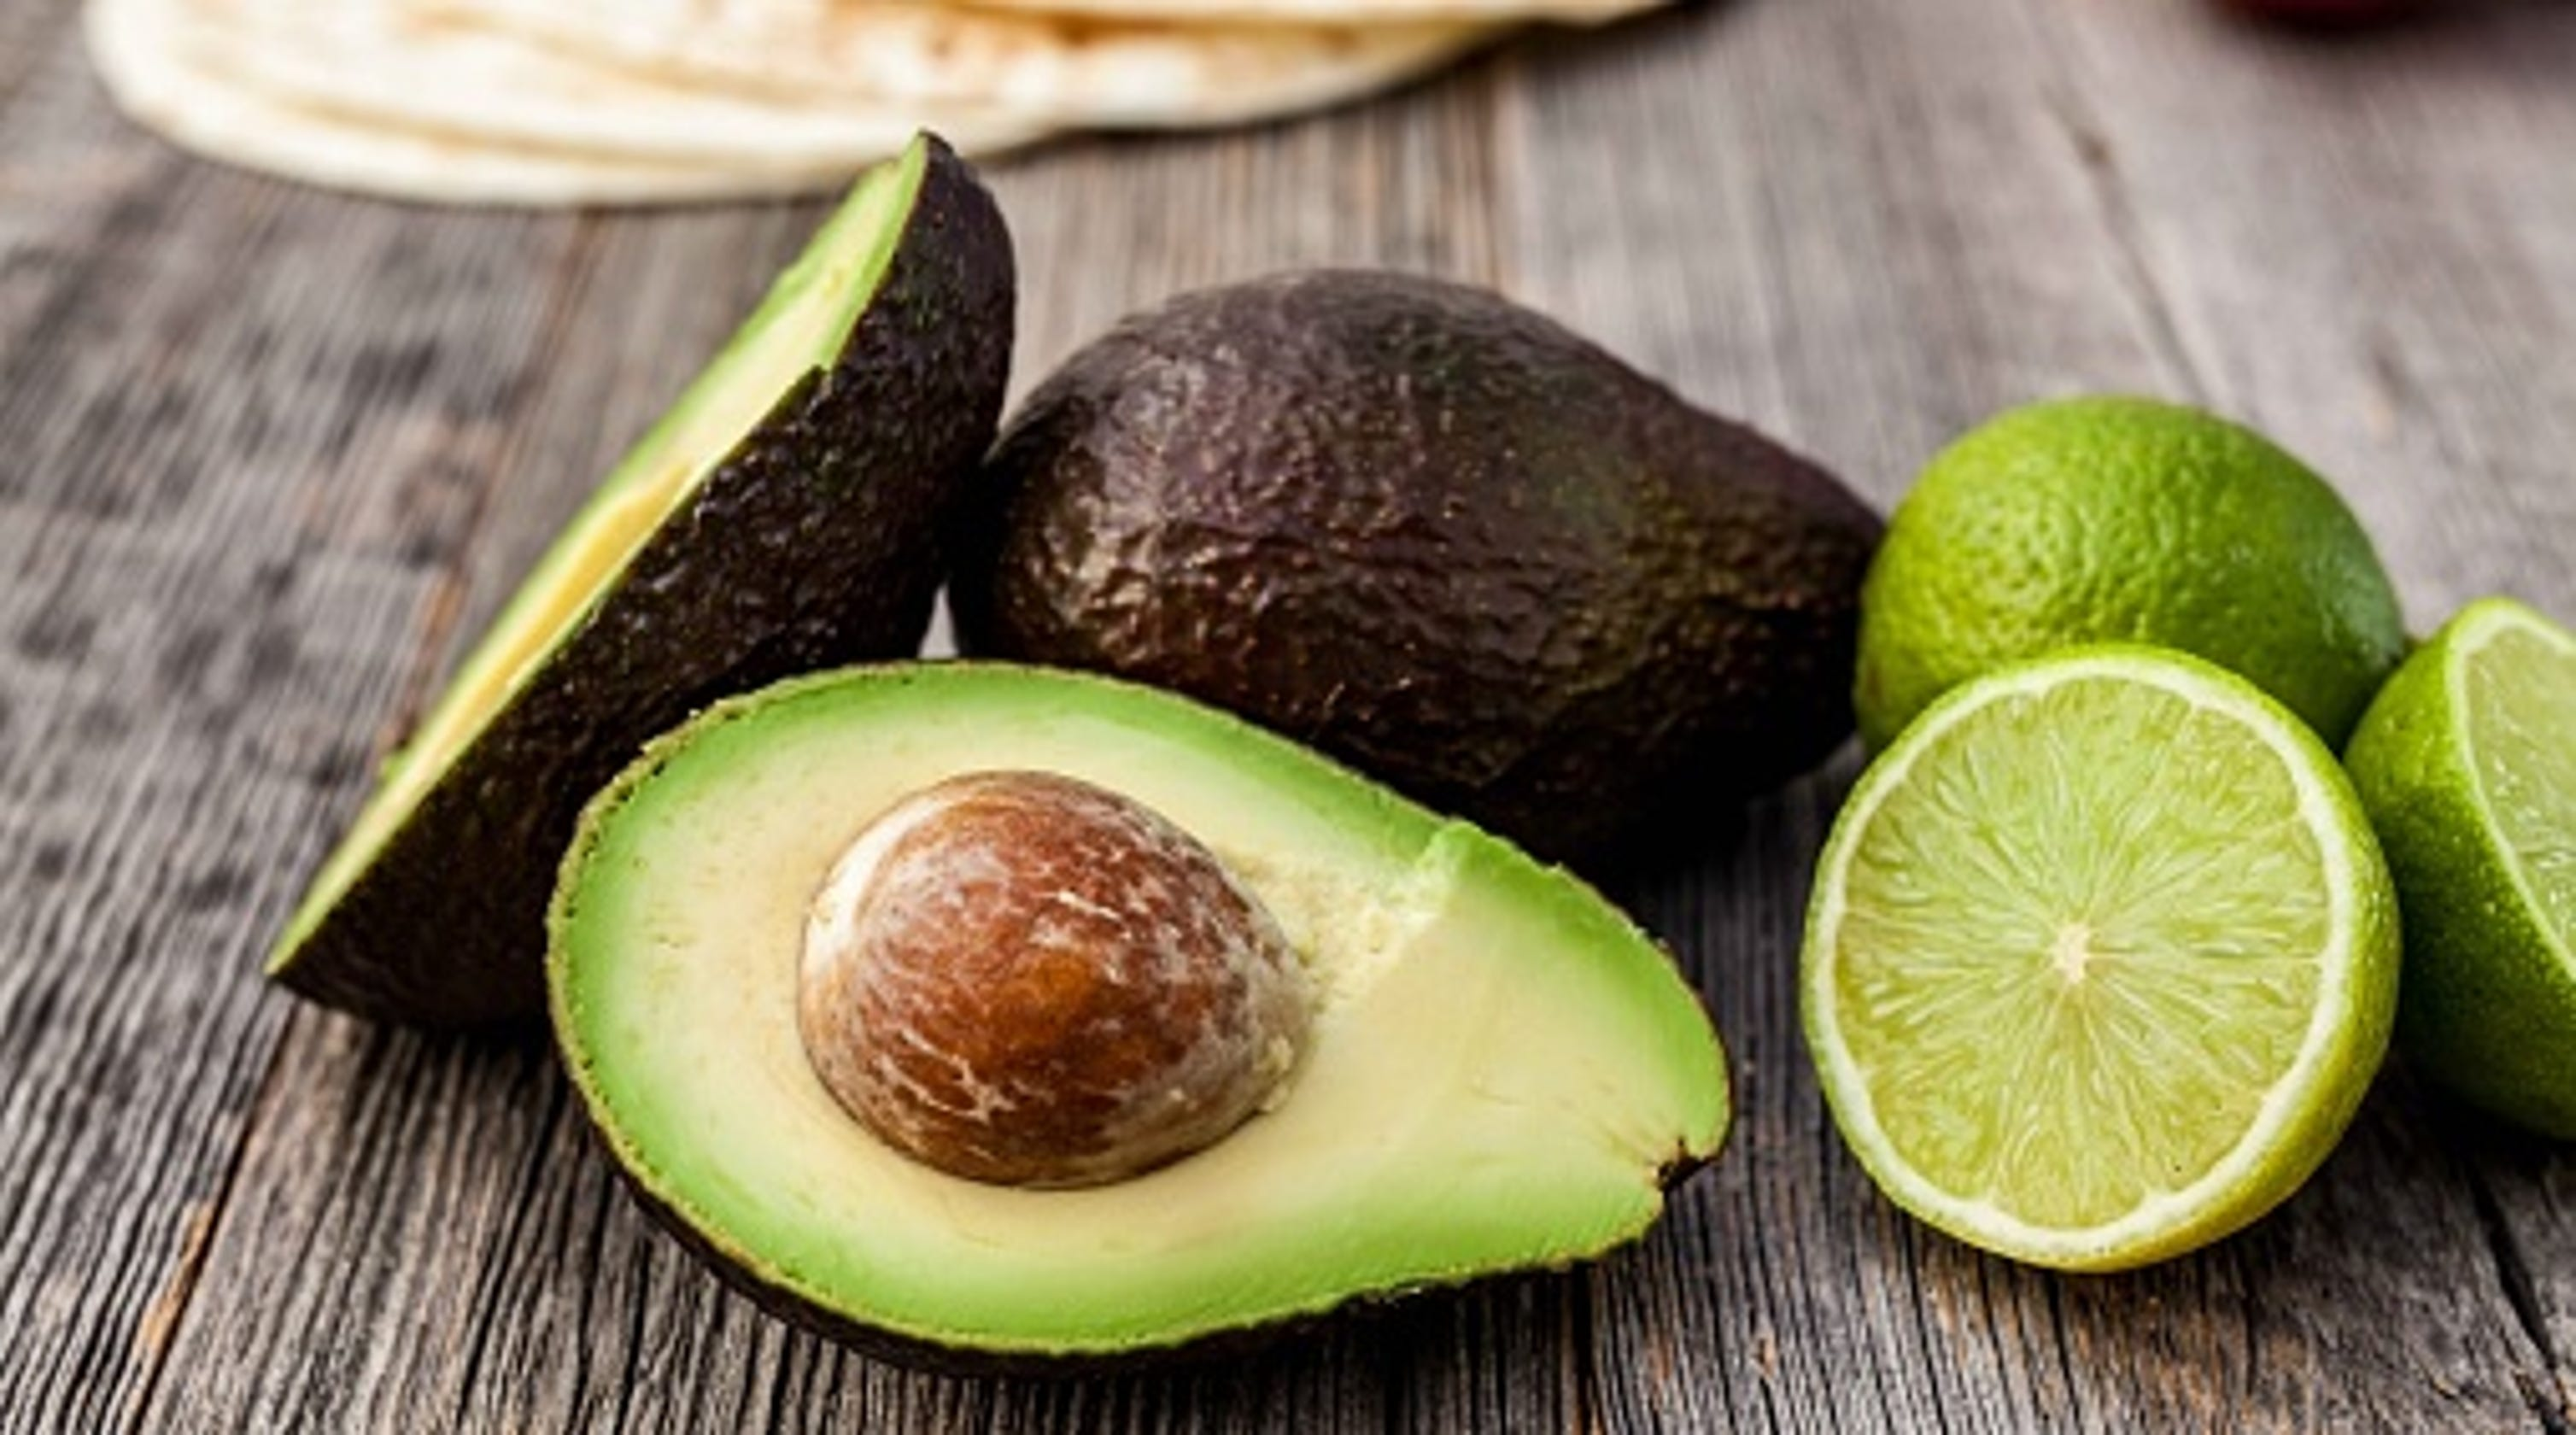 America would run out of avocados in about 3 weeks if Trump closes border:  Report